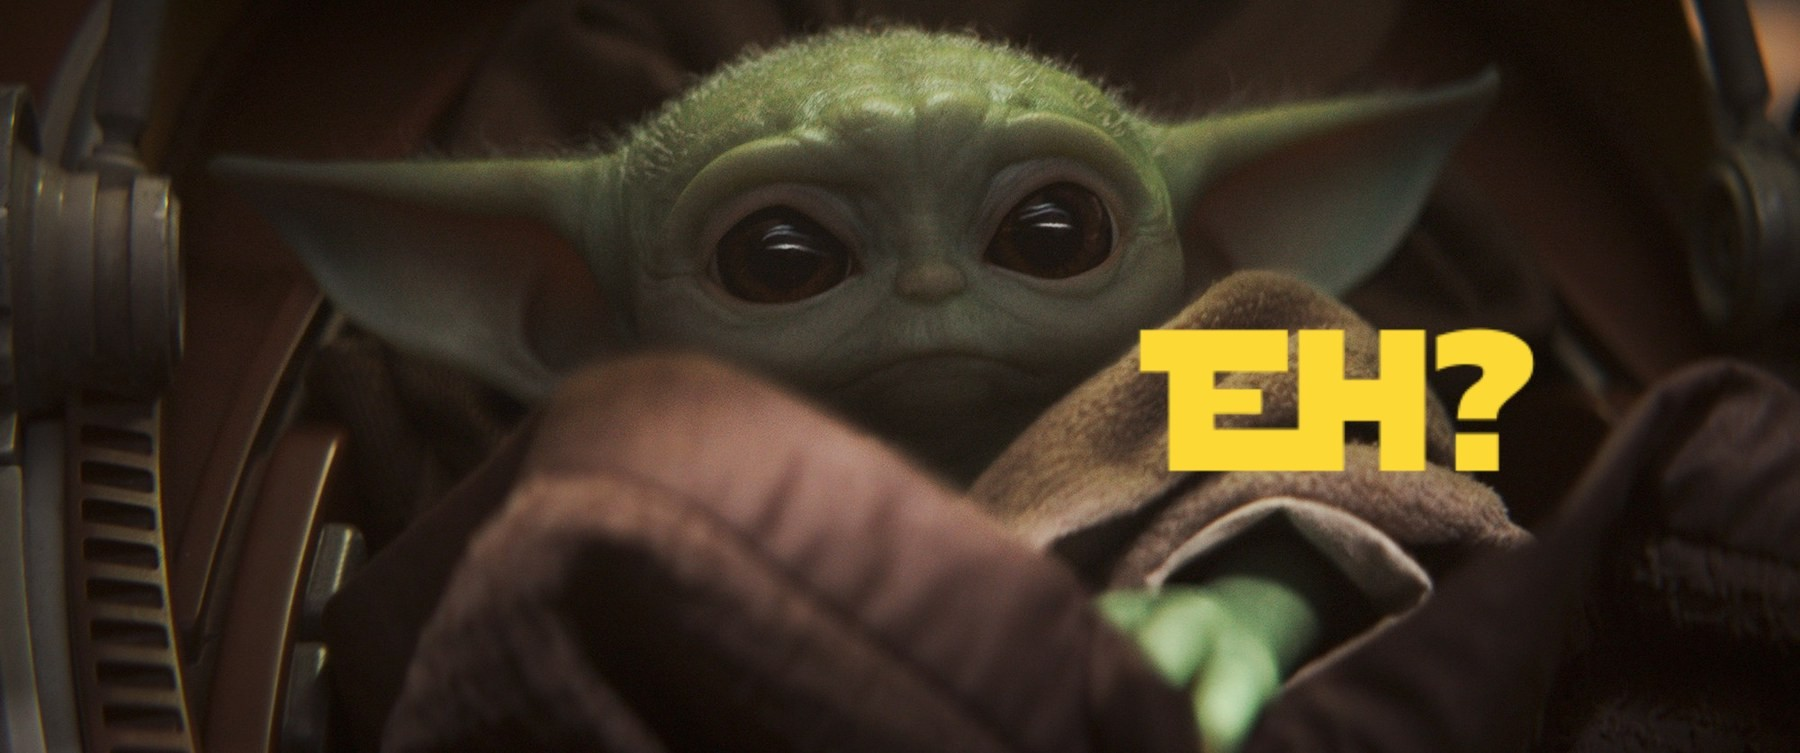 Where does baby yoda come from